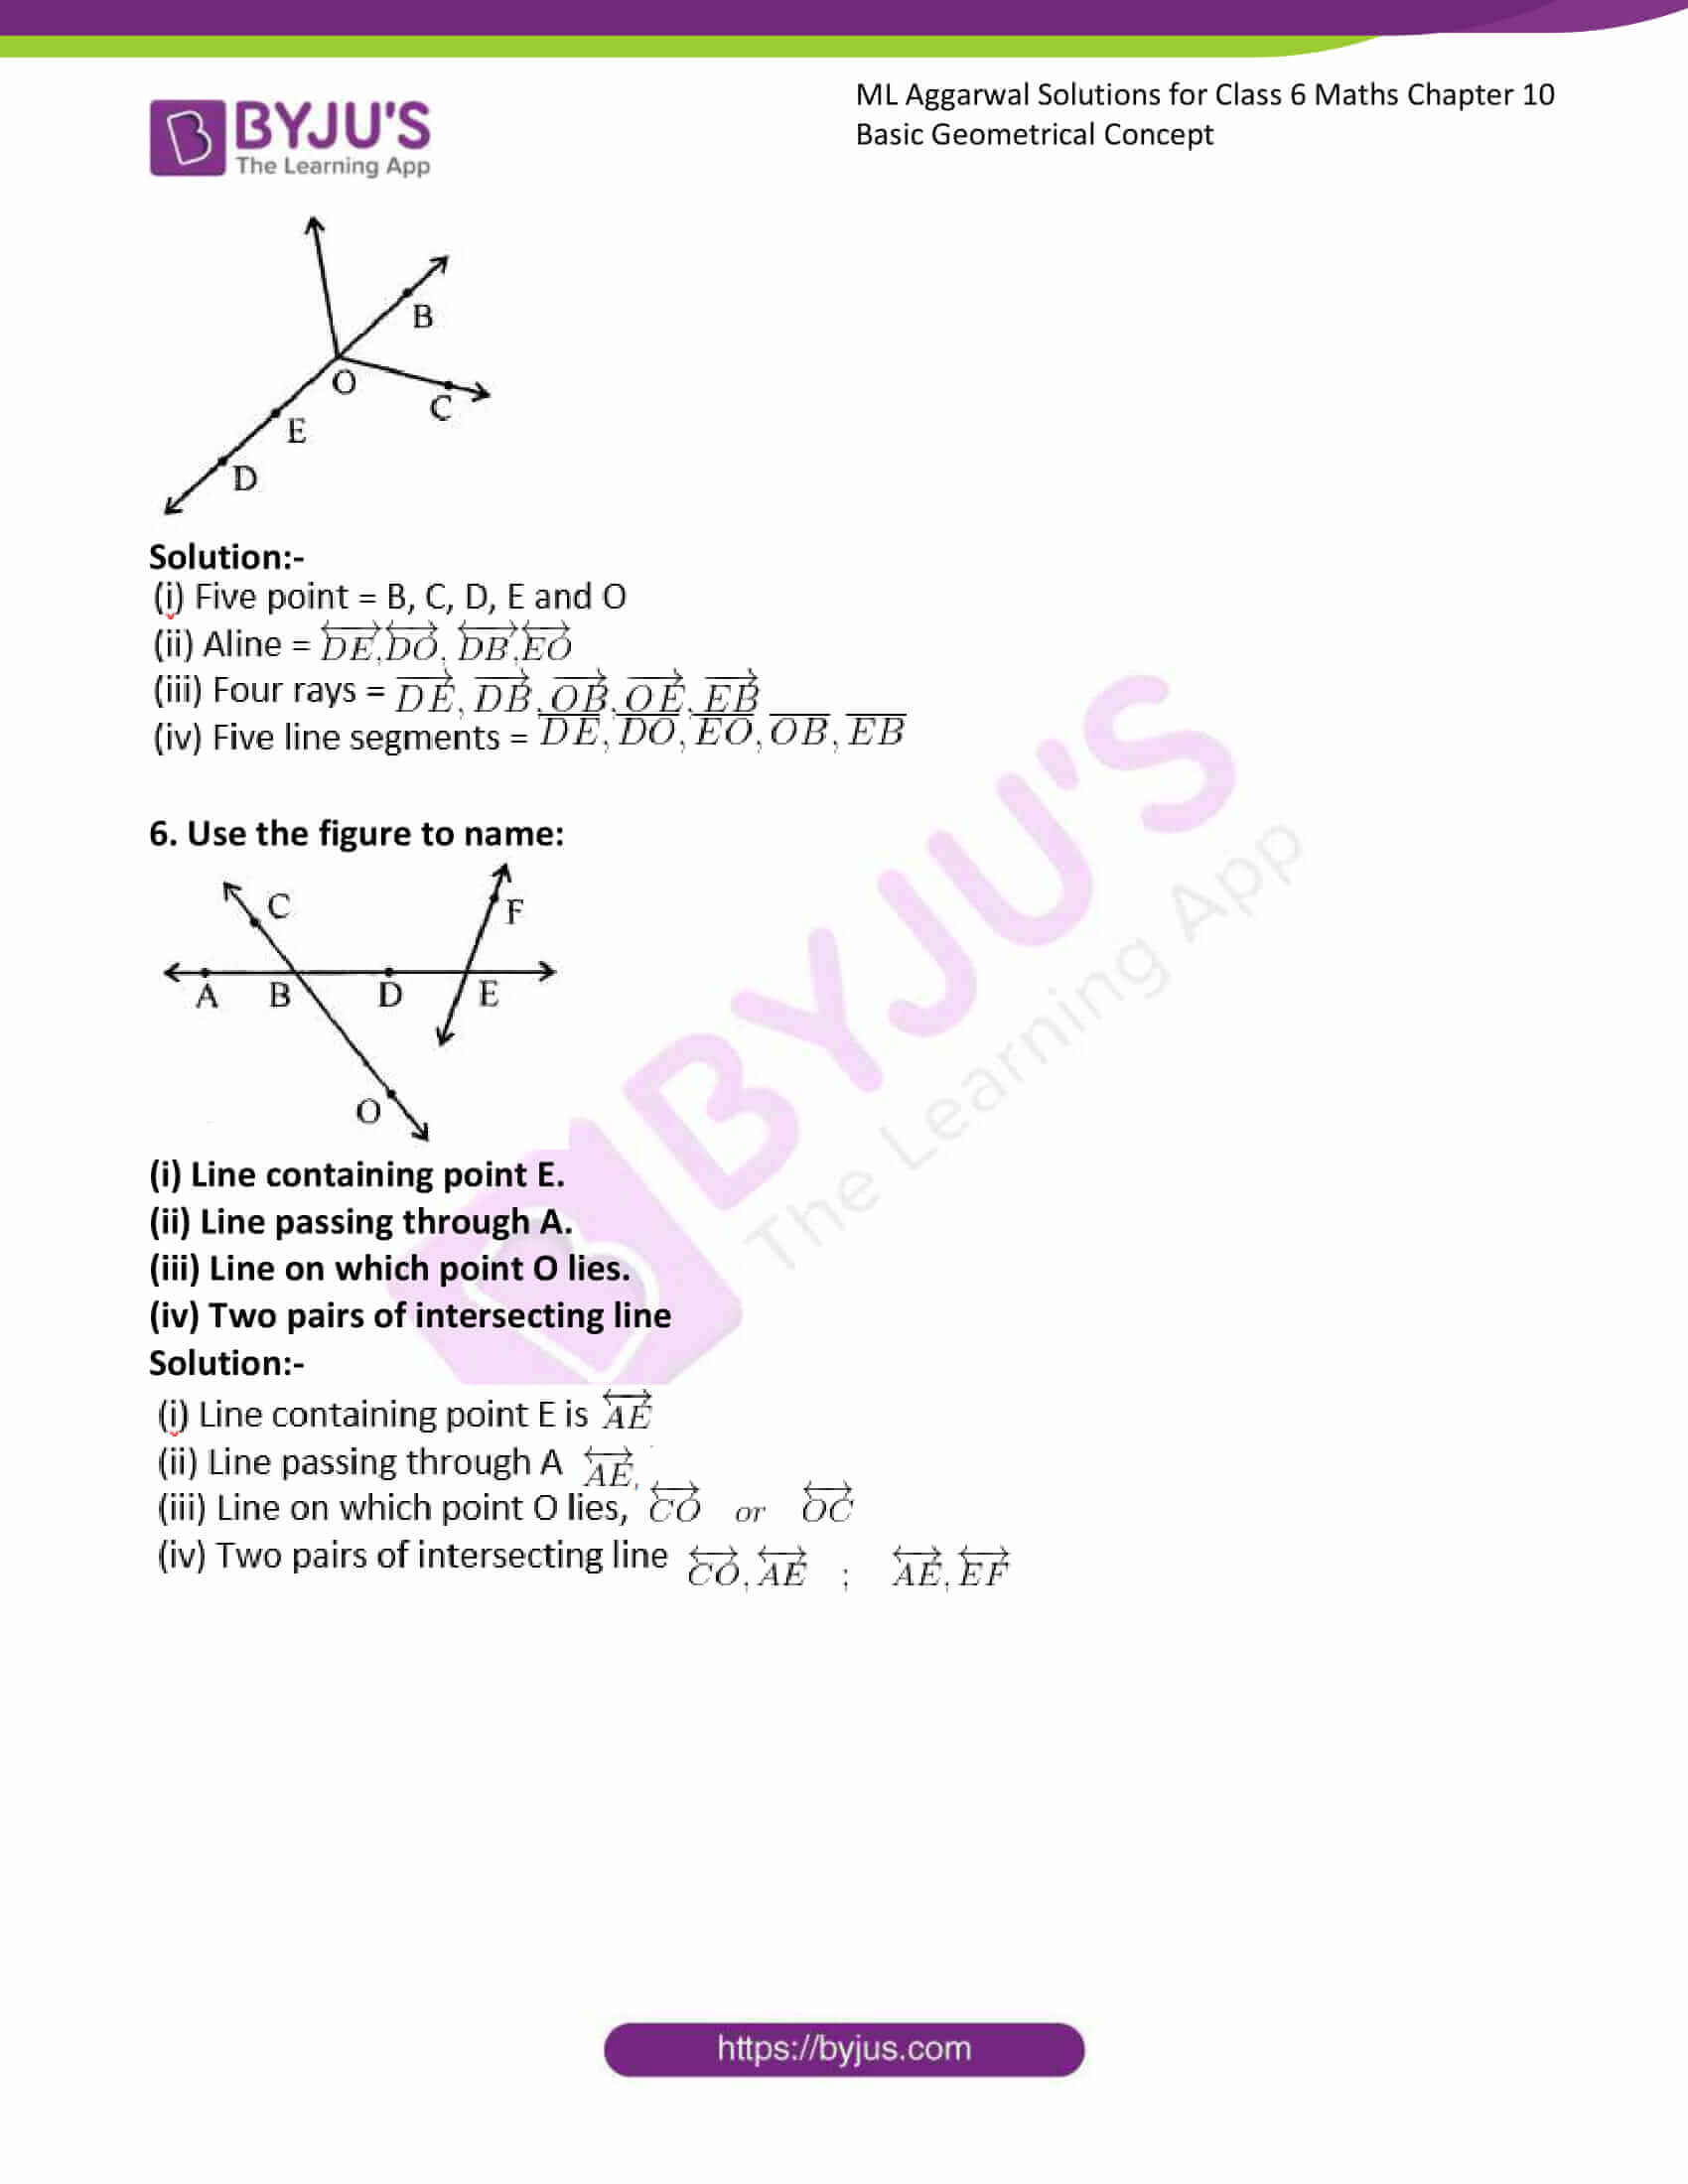 ml aggarwal solutions for class 6 maths chapter 10 2